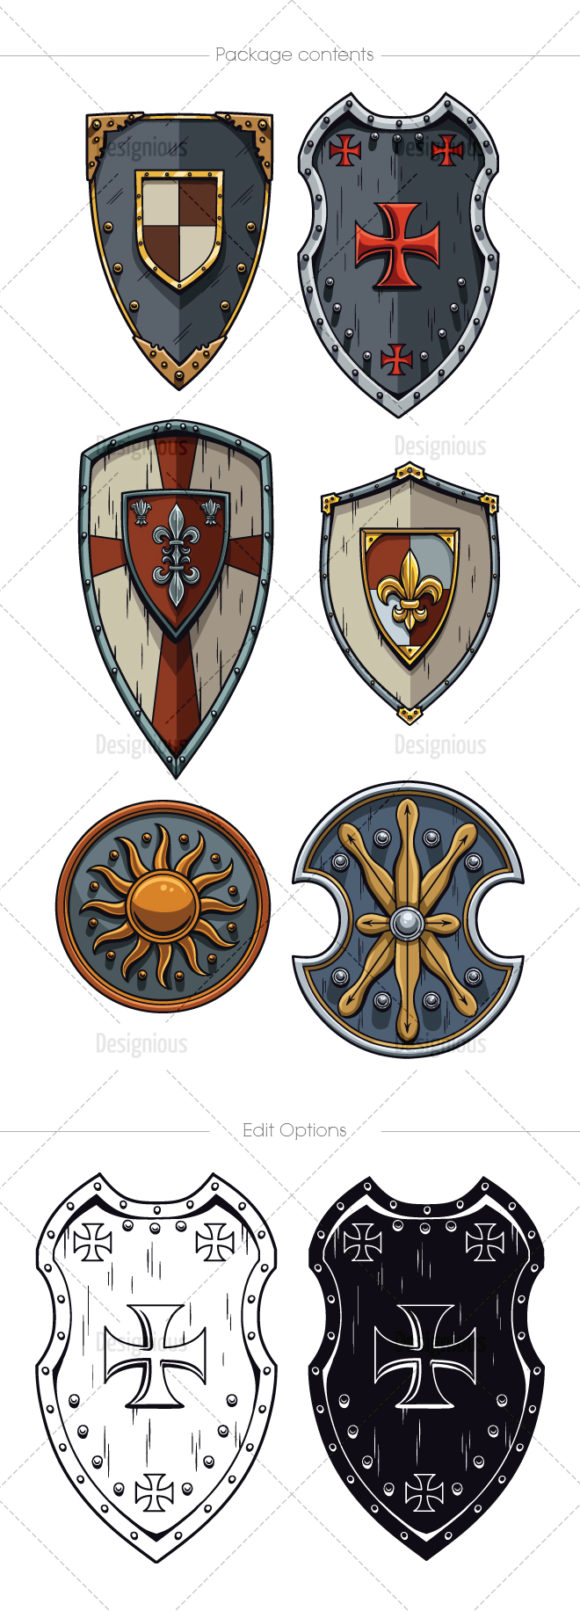 Shields Vector Pack 5 products designious vector shields 5 large